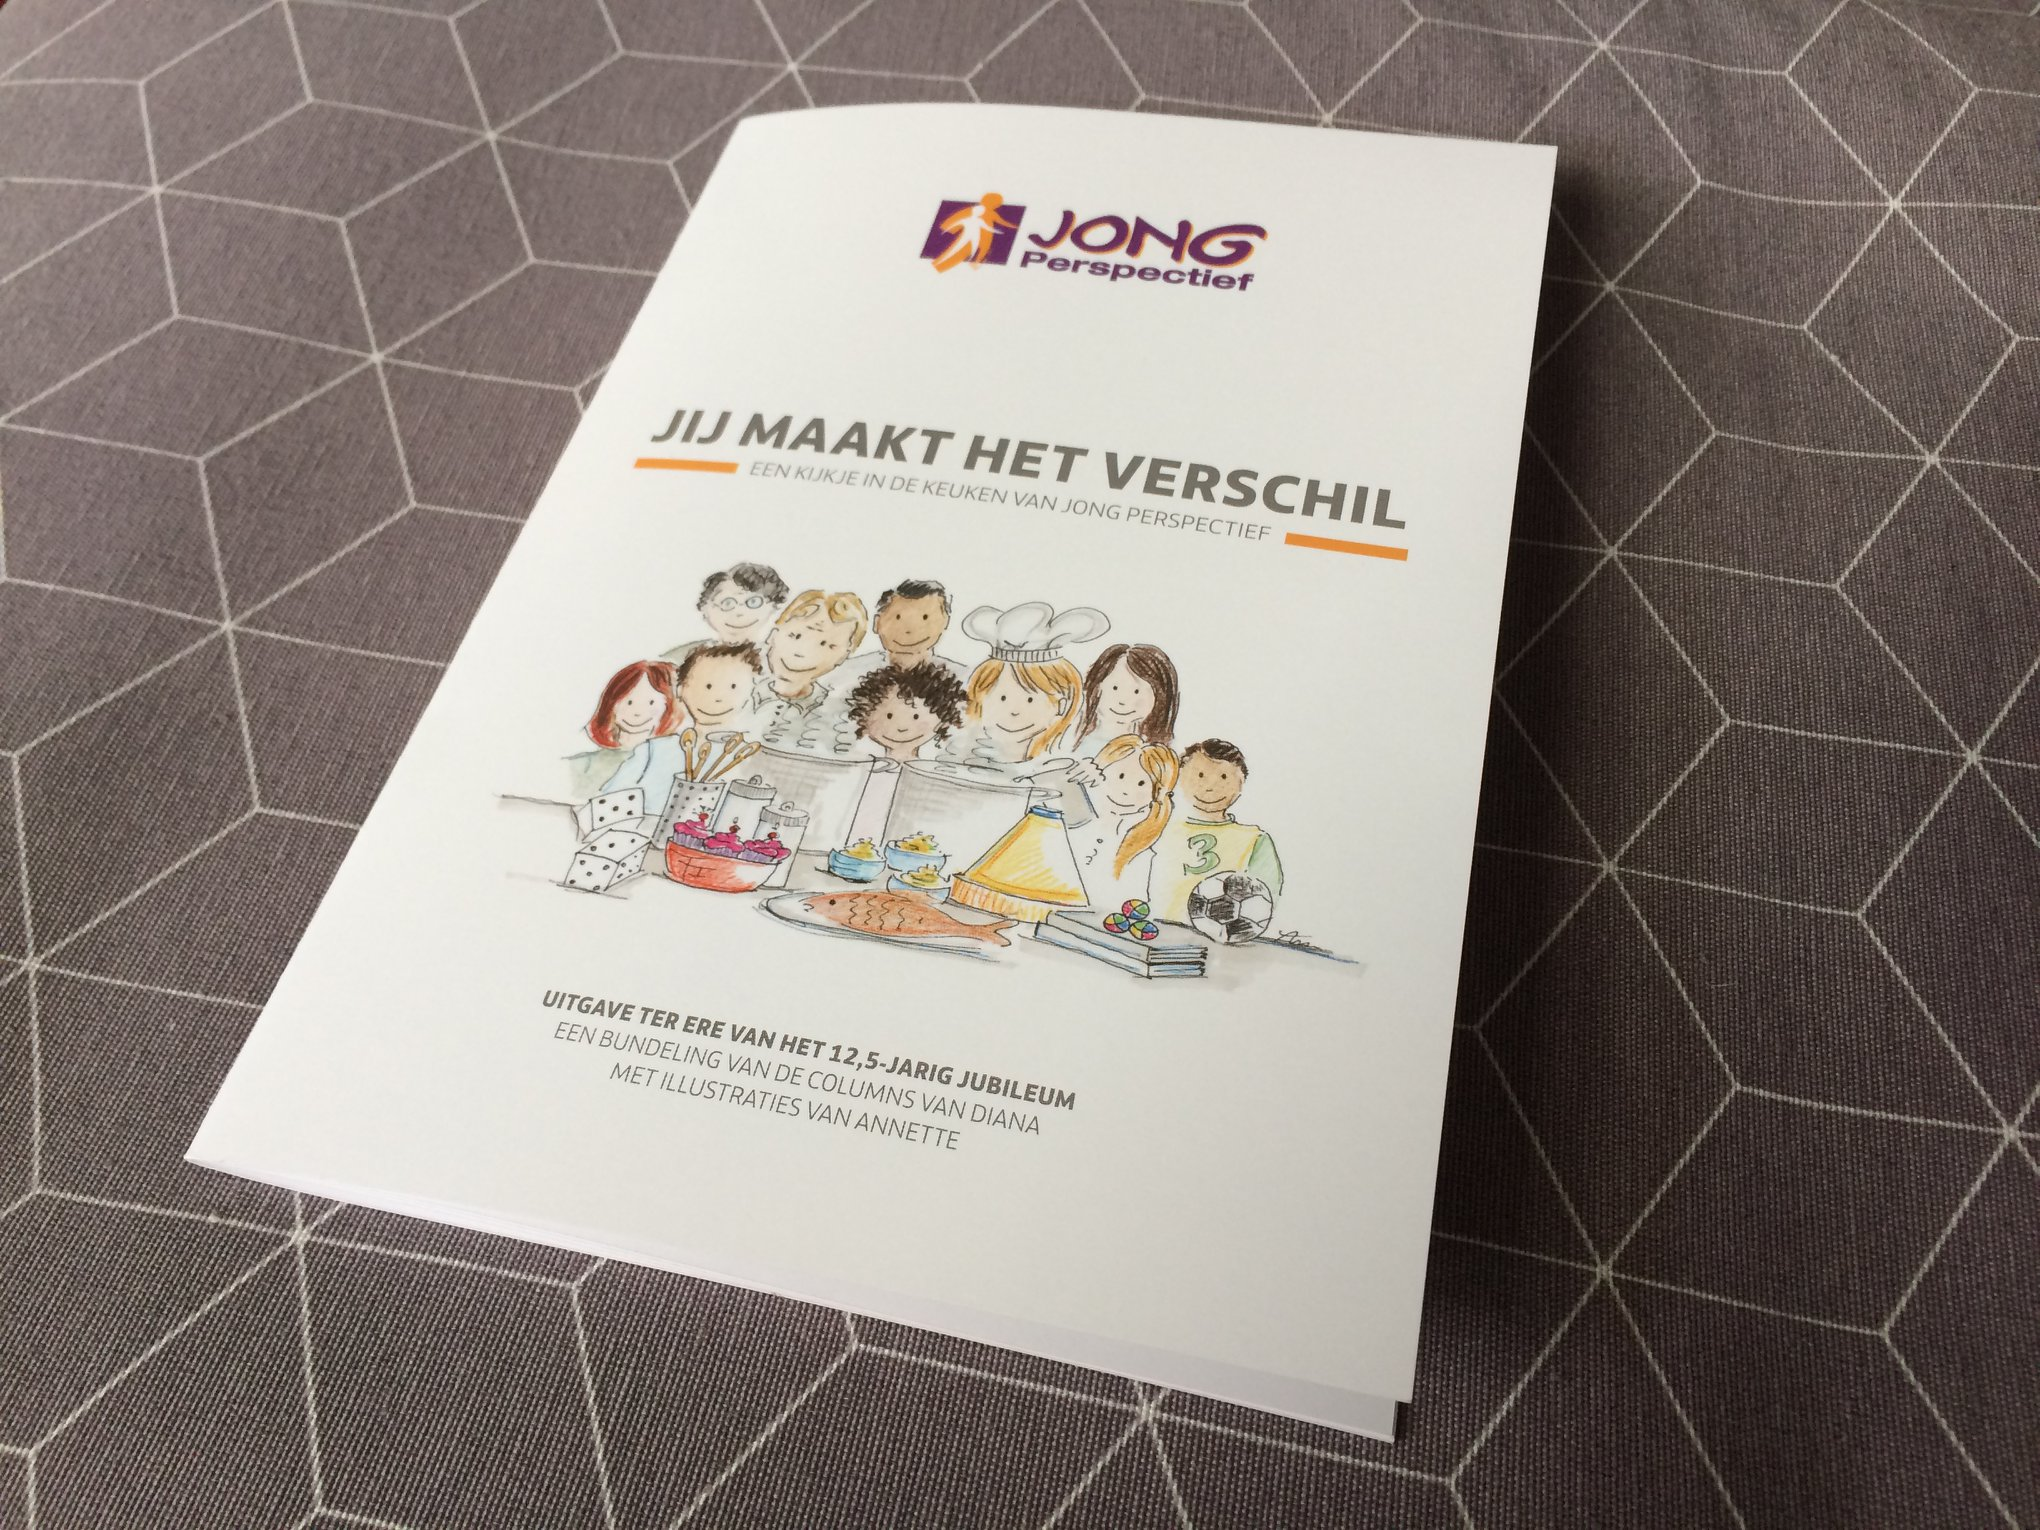 Boek over mentorproject